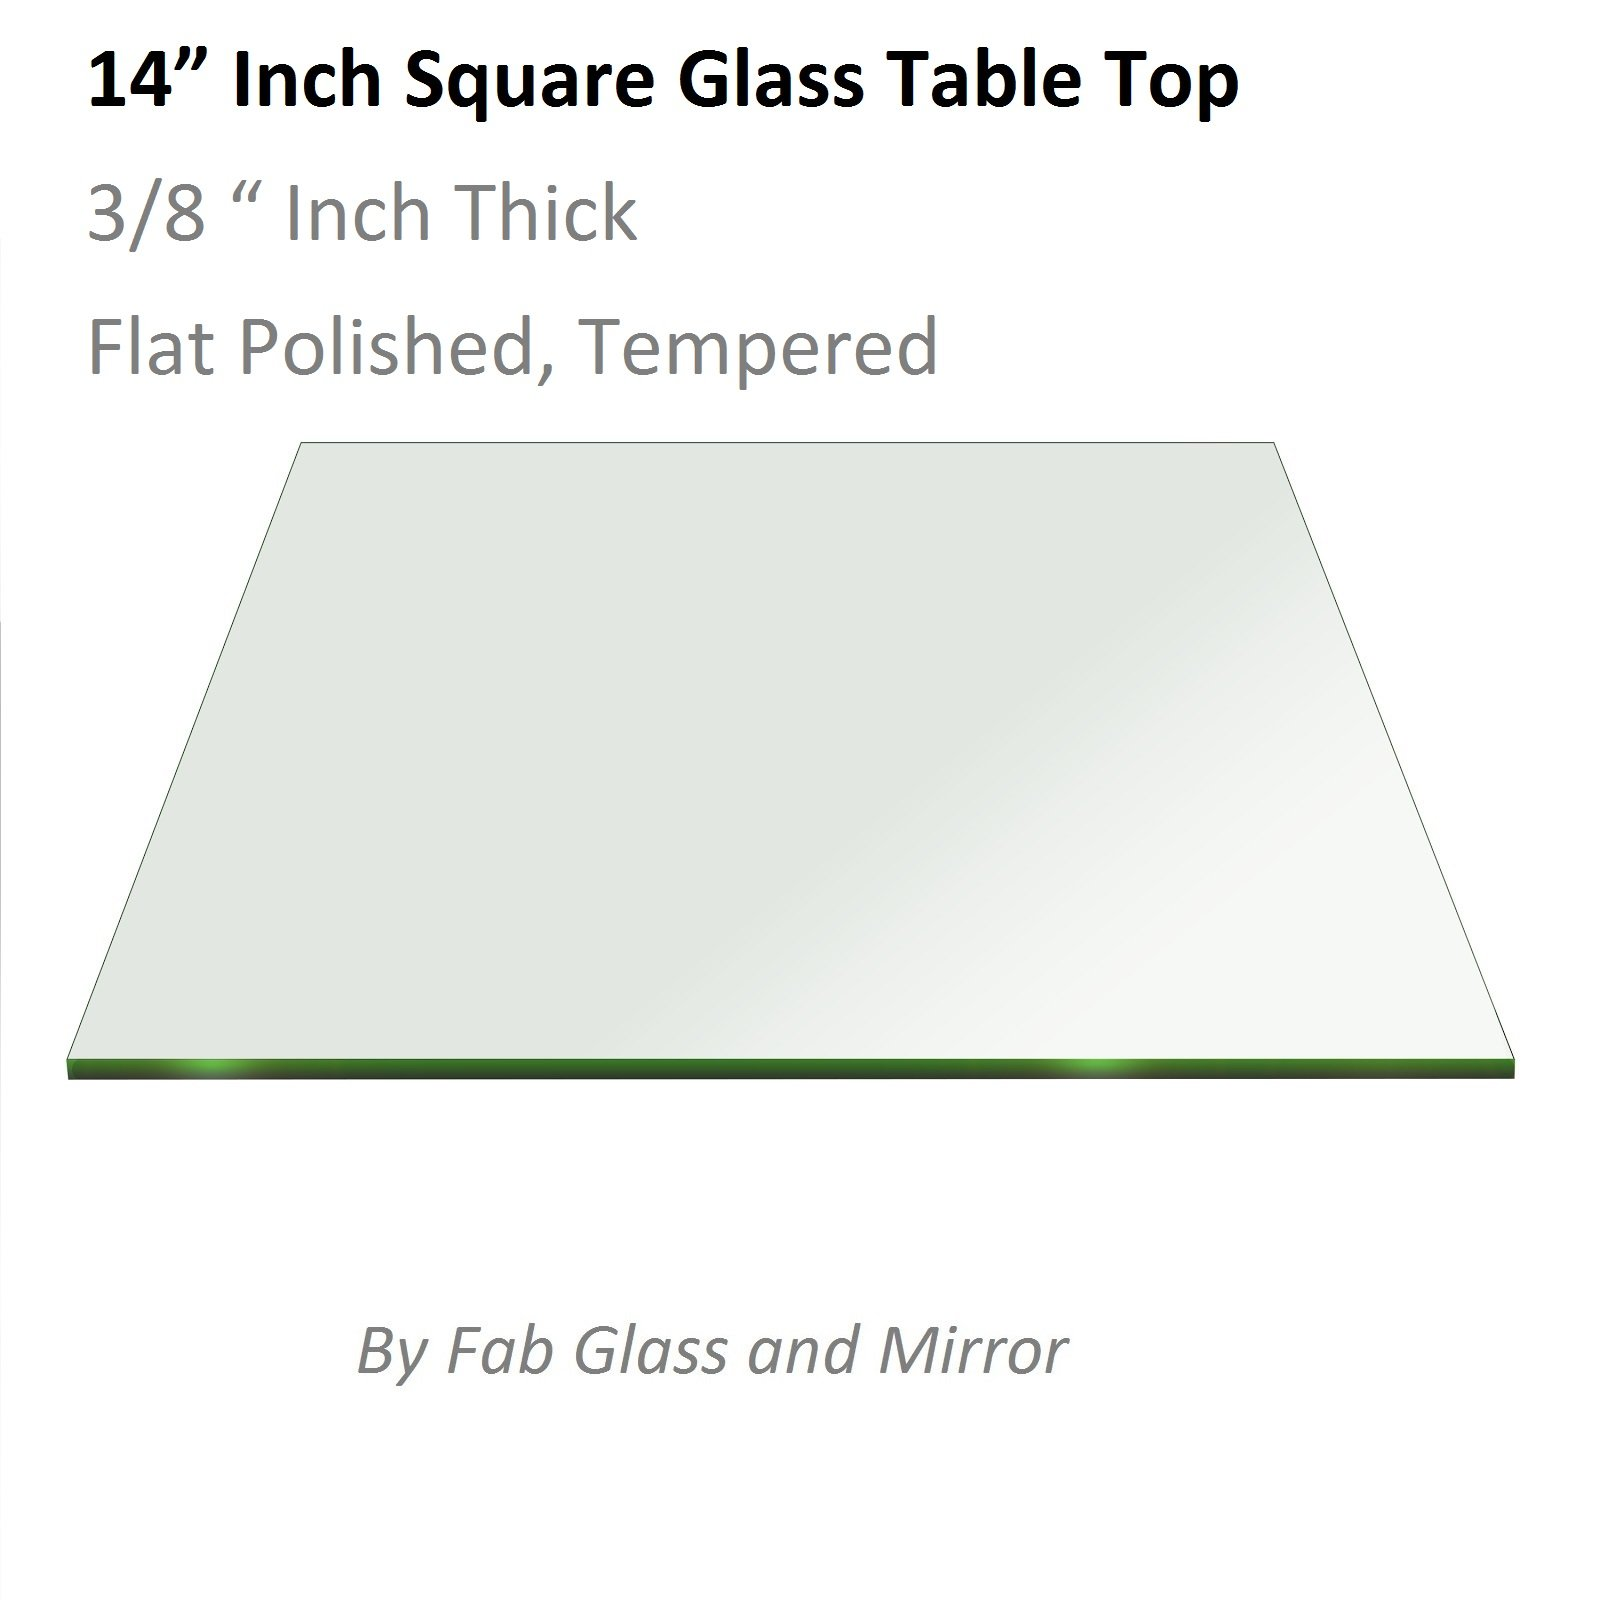 Fab Glass 14'' Inch Square Clear Glass Table Top 3/8'' Thick Flat Polished Tempered Radius Corners